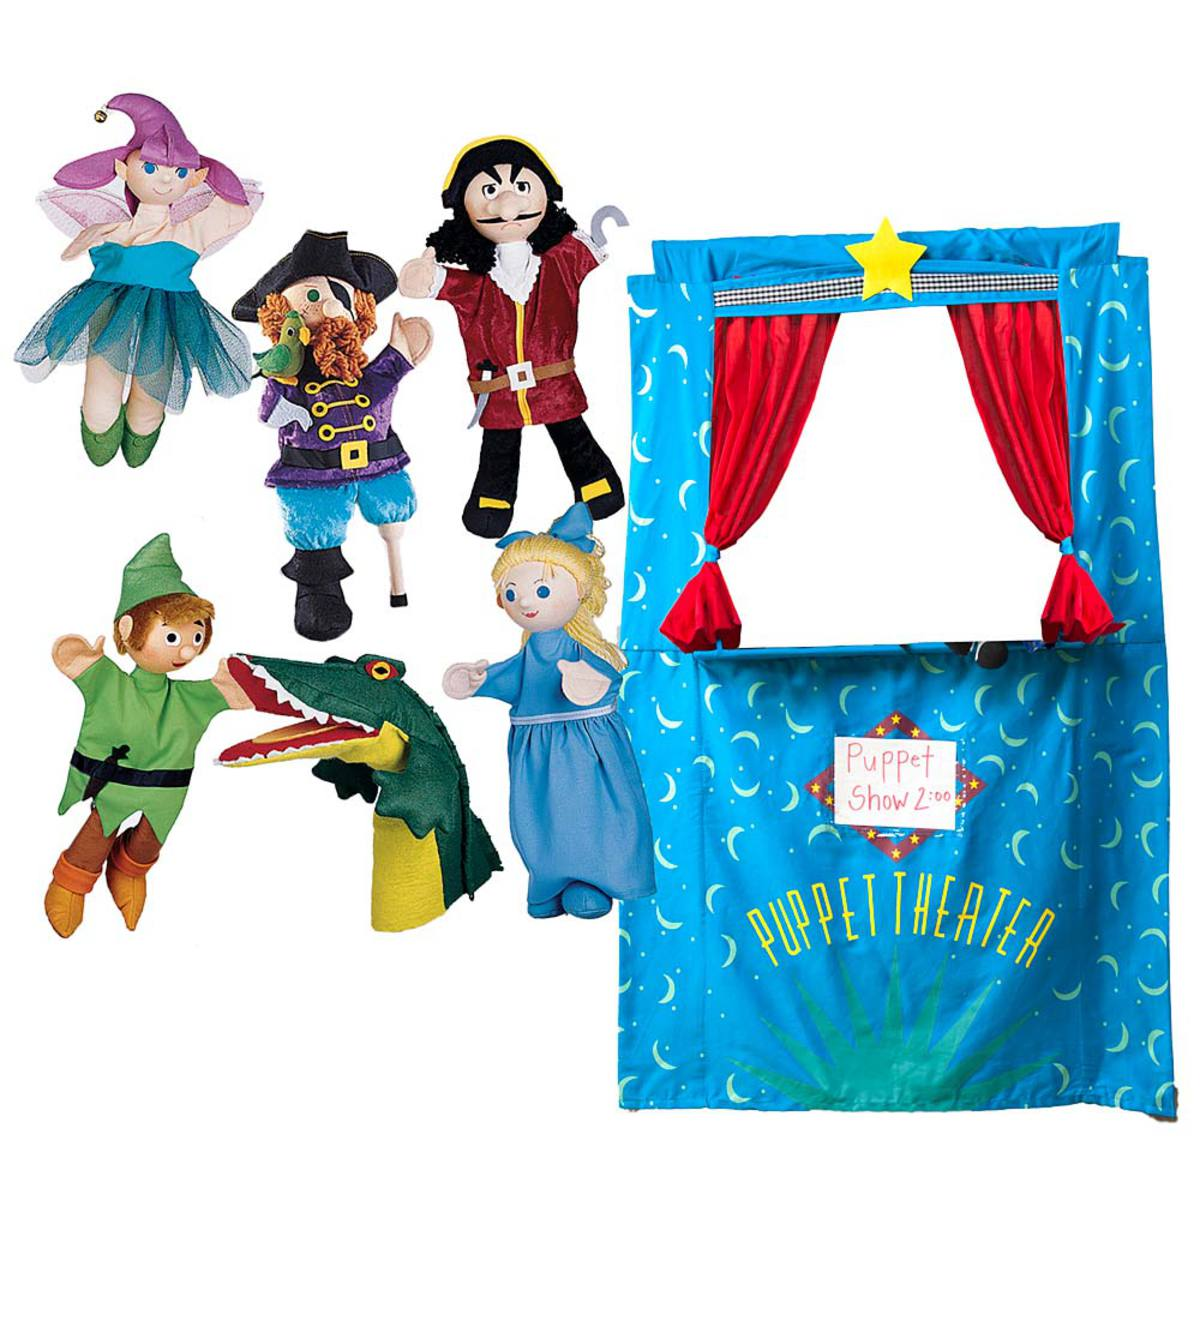 Six Puppets plus Doorway Theater Special - Peter Pan